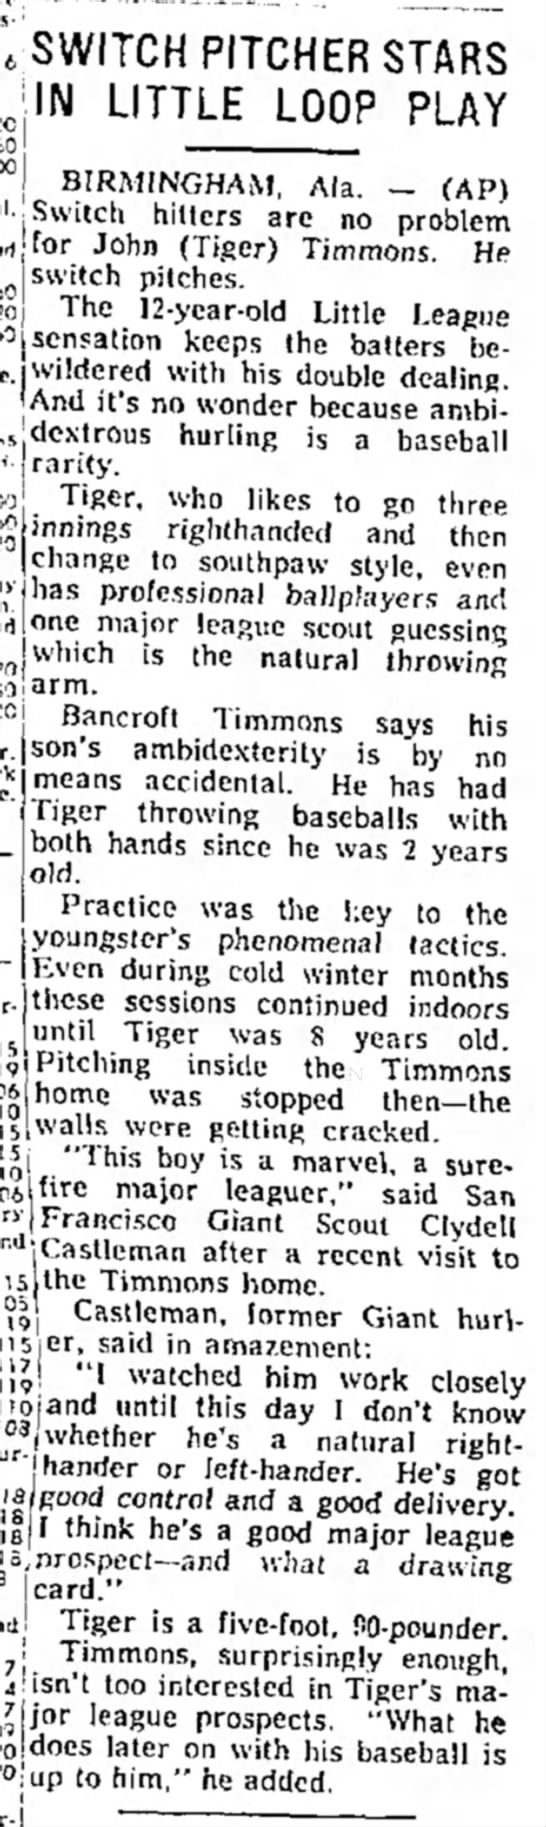 Tiger Timmons - Little League Switch Pitcher 1958 -